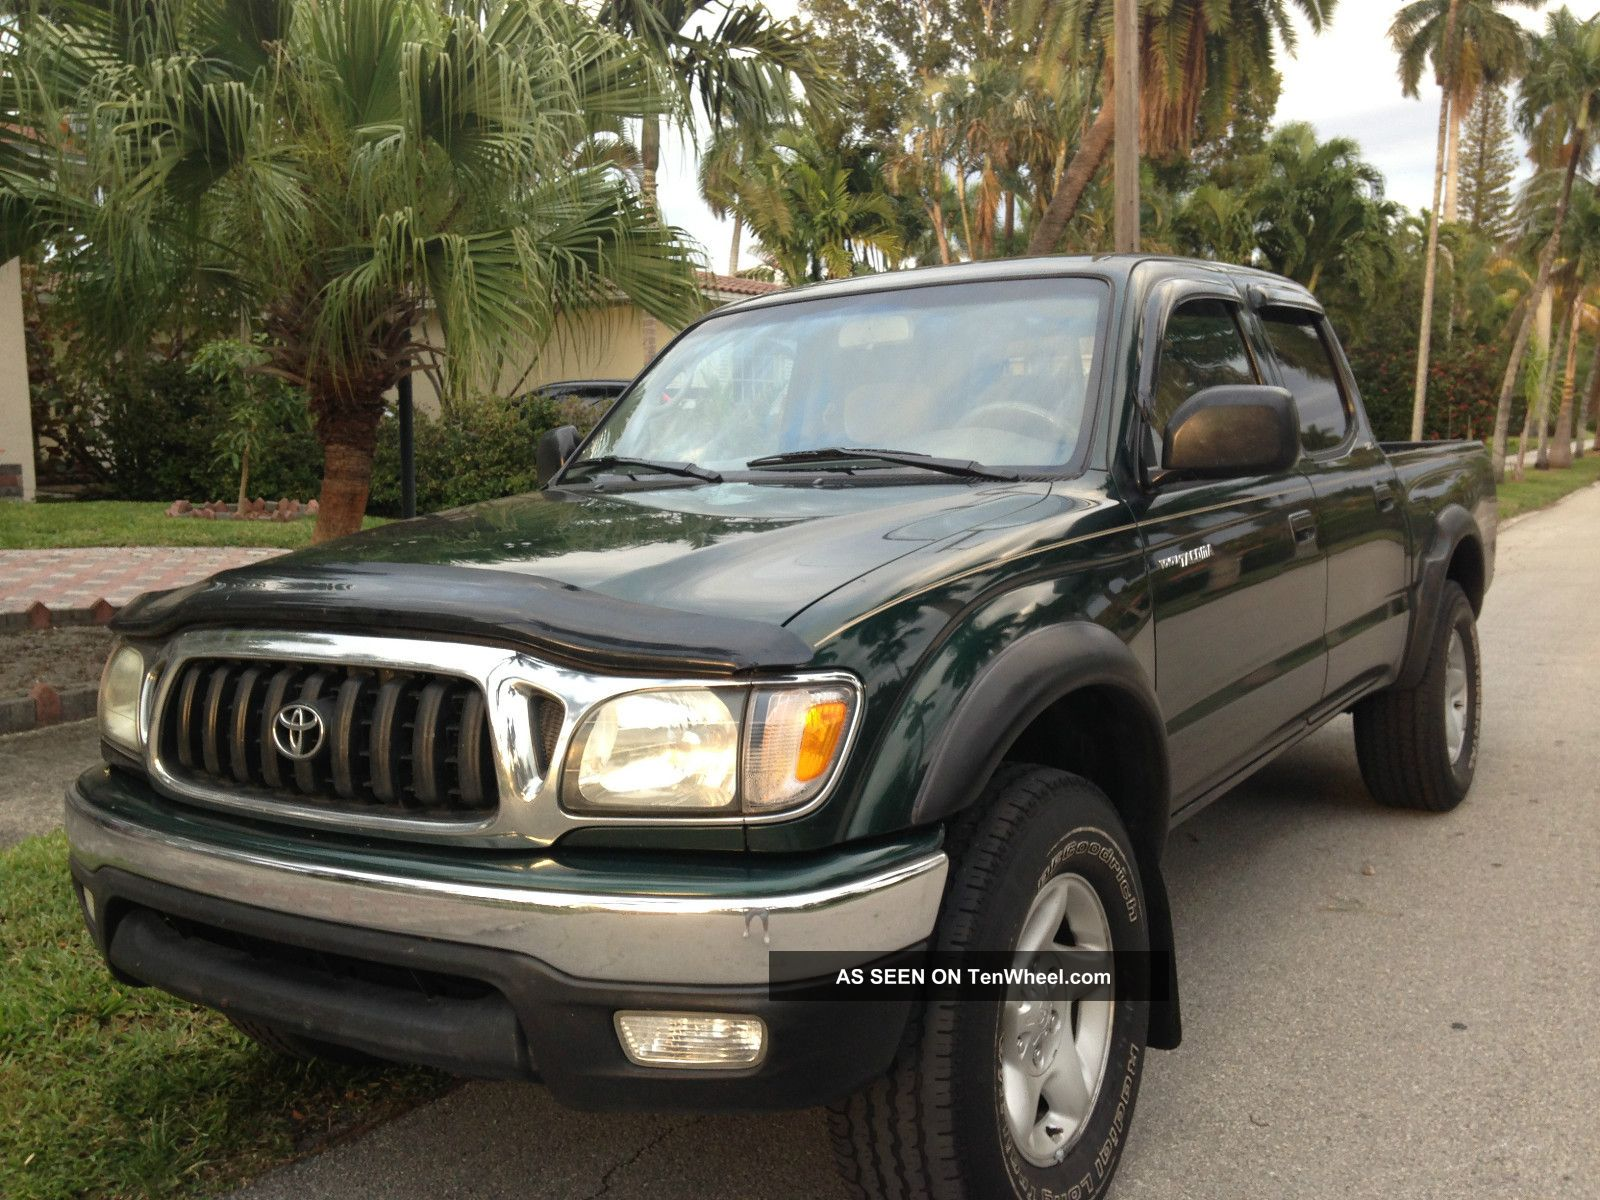 & 2002 Toyota Tacoma Extended 4 Cylinder 4 Doors